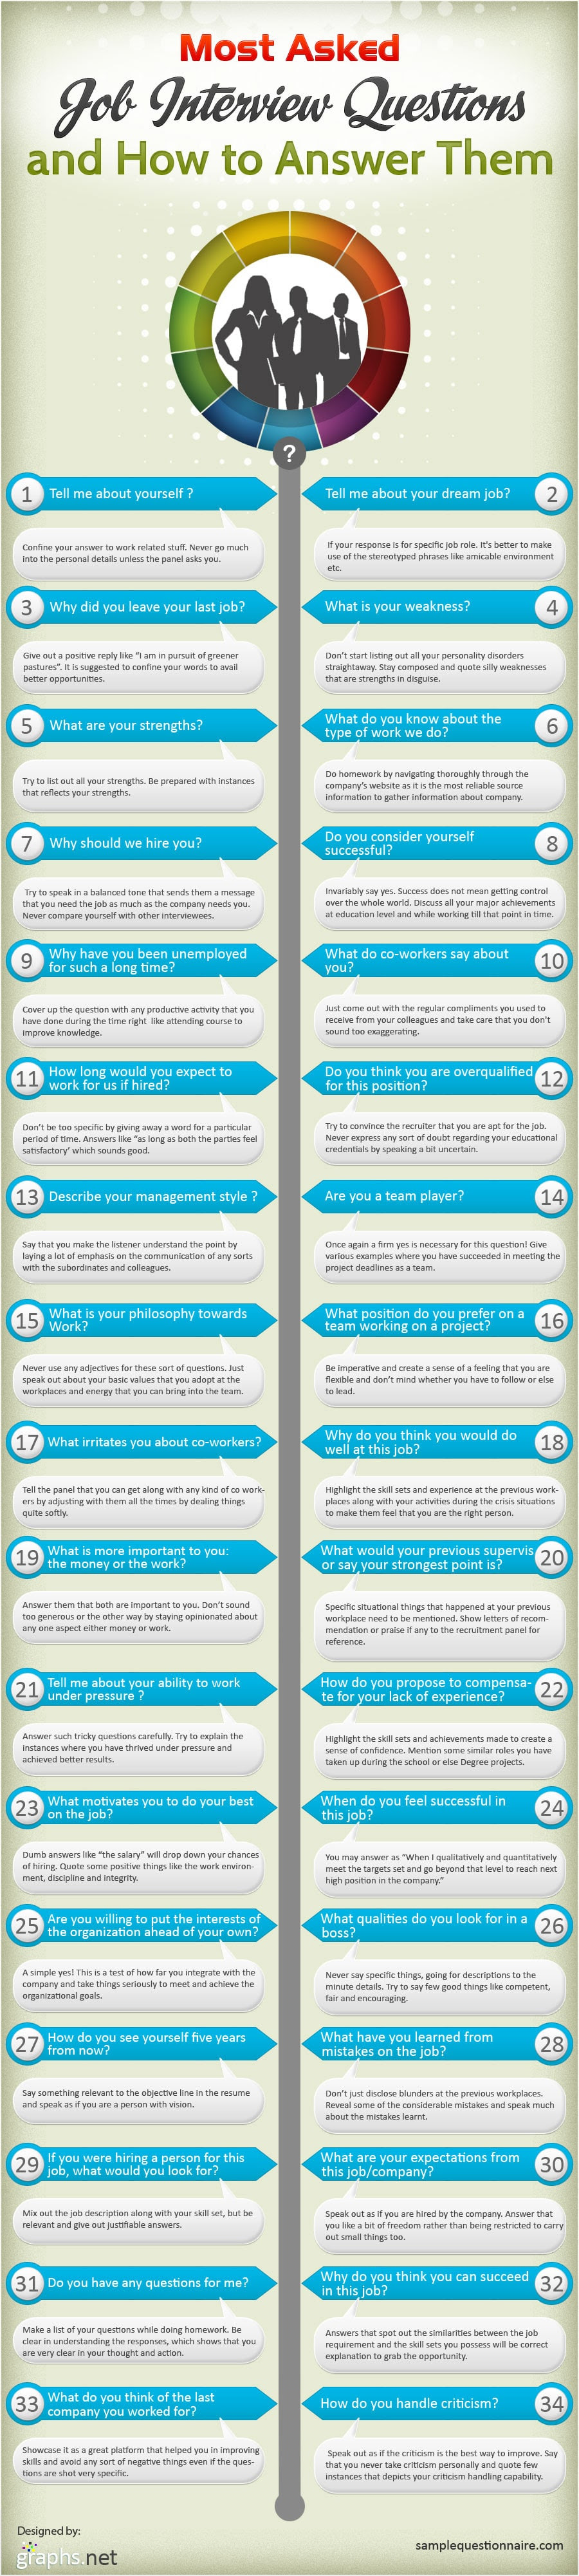 34 Most Asked Job Interview Questions & How To Answer Them ...